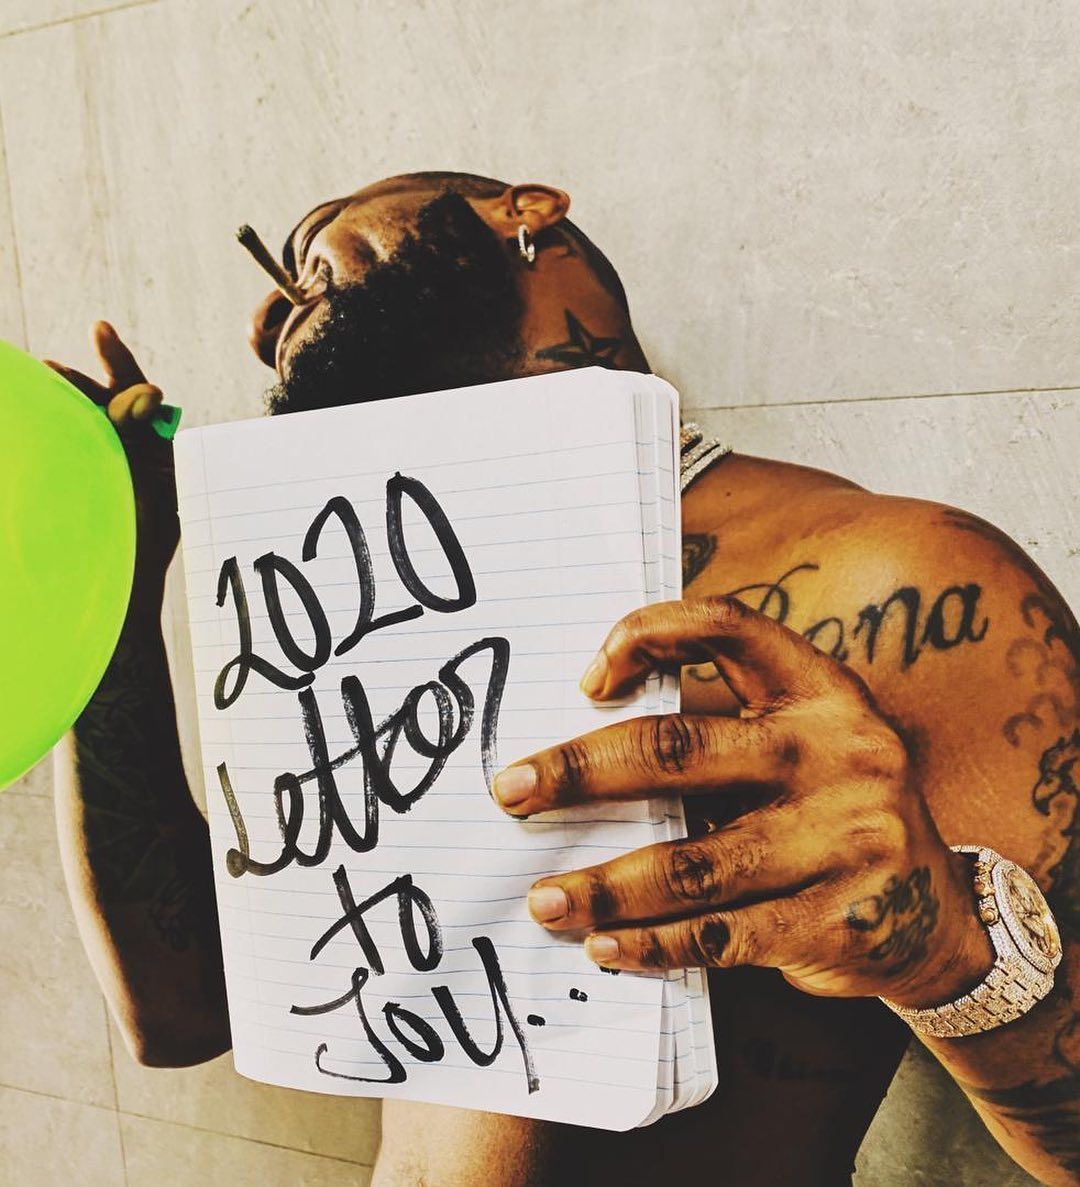 Davido - 2020 Letter To You (Snippet)